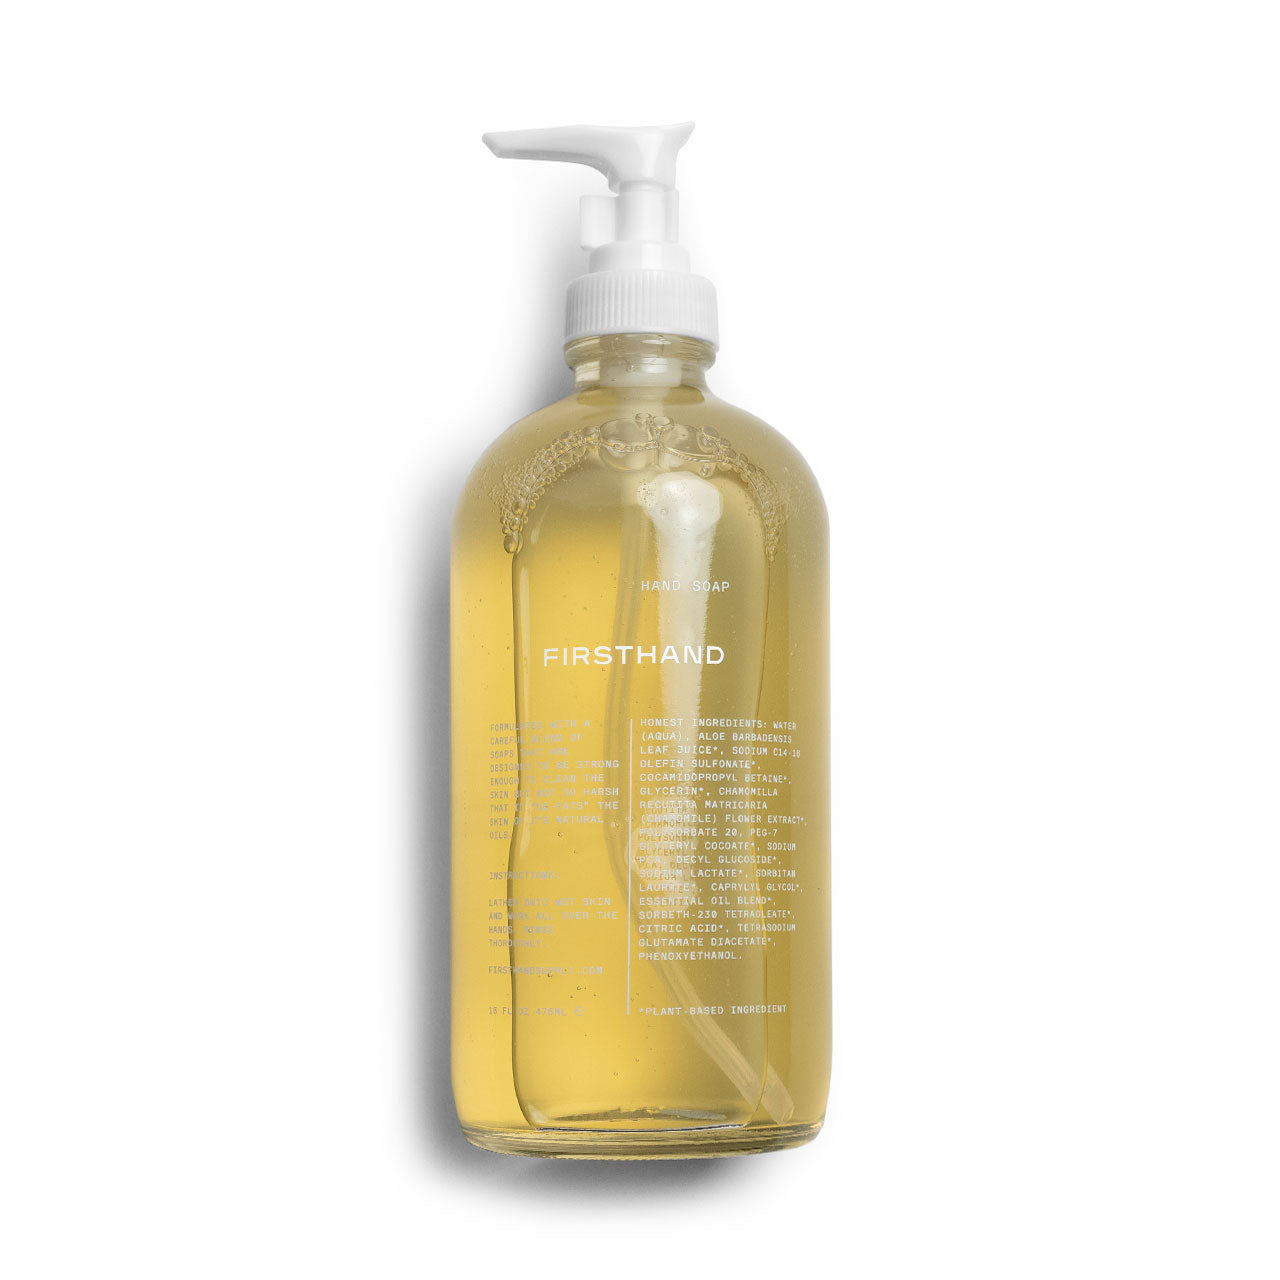 FirstHand Liquid Hand Soap